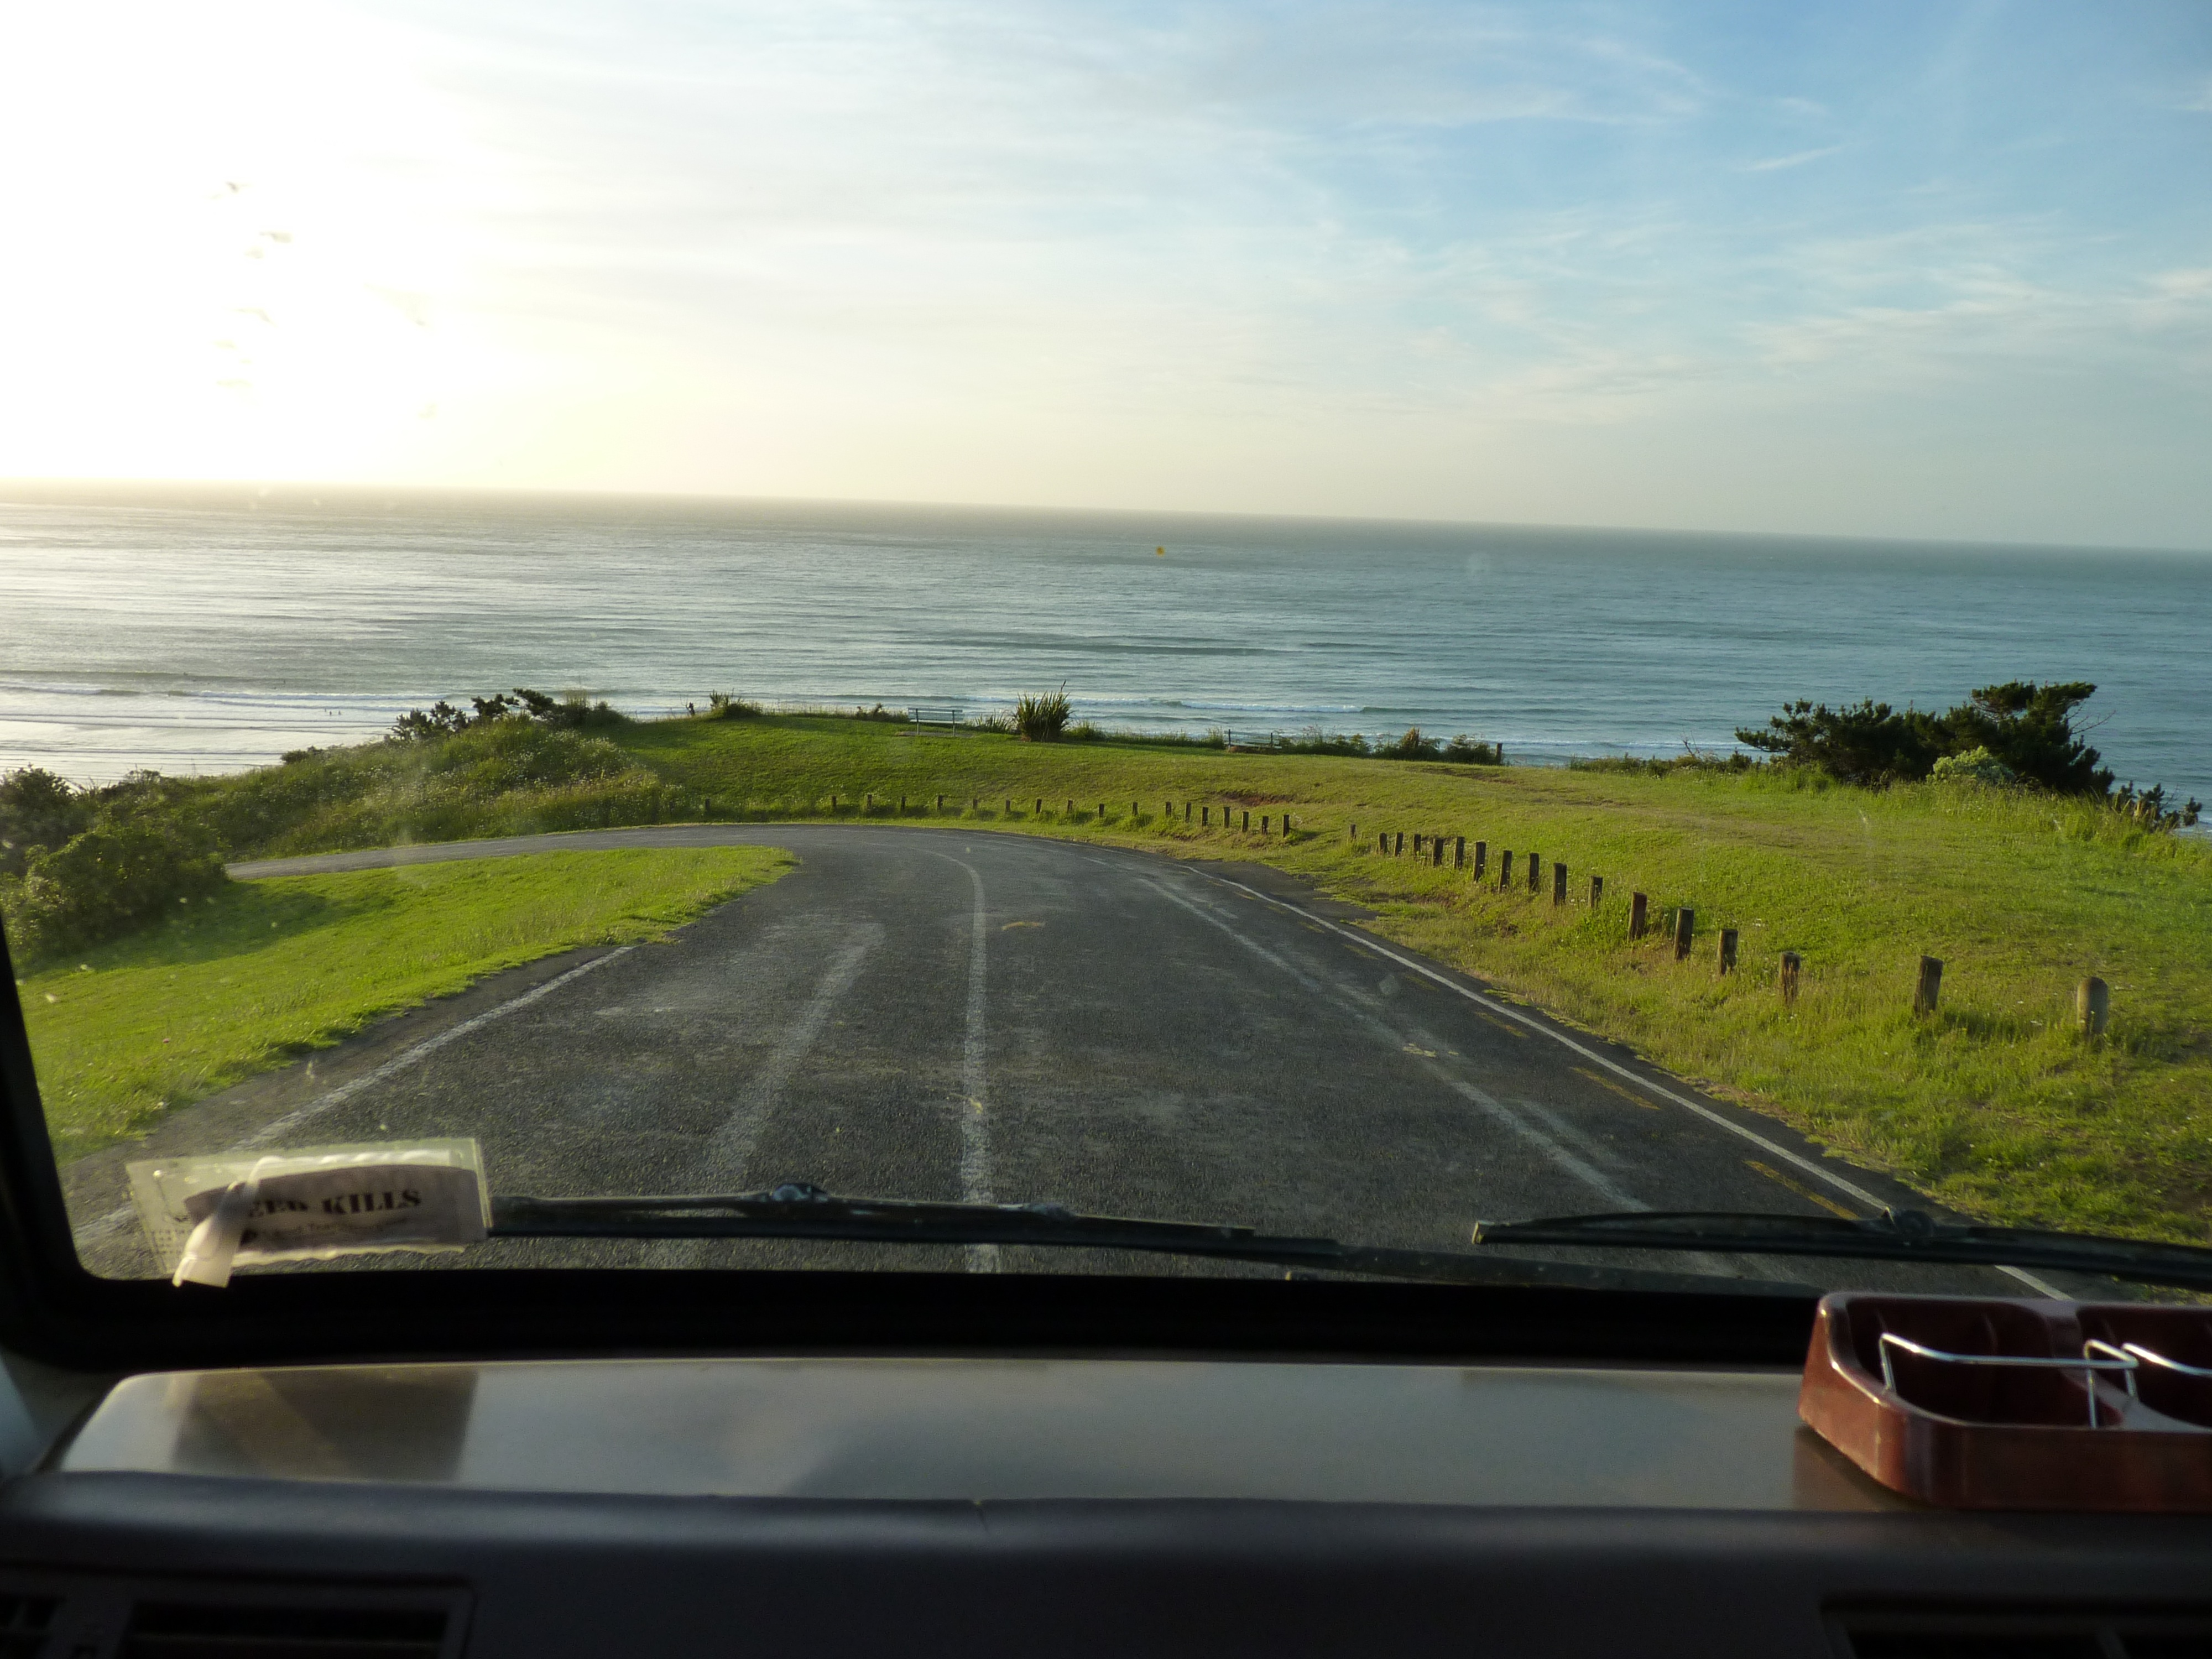 View from Max: The Tasman Sea